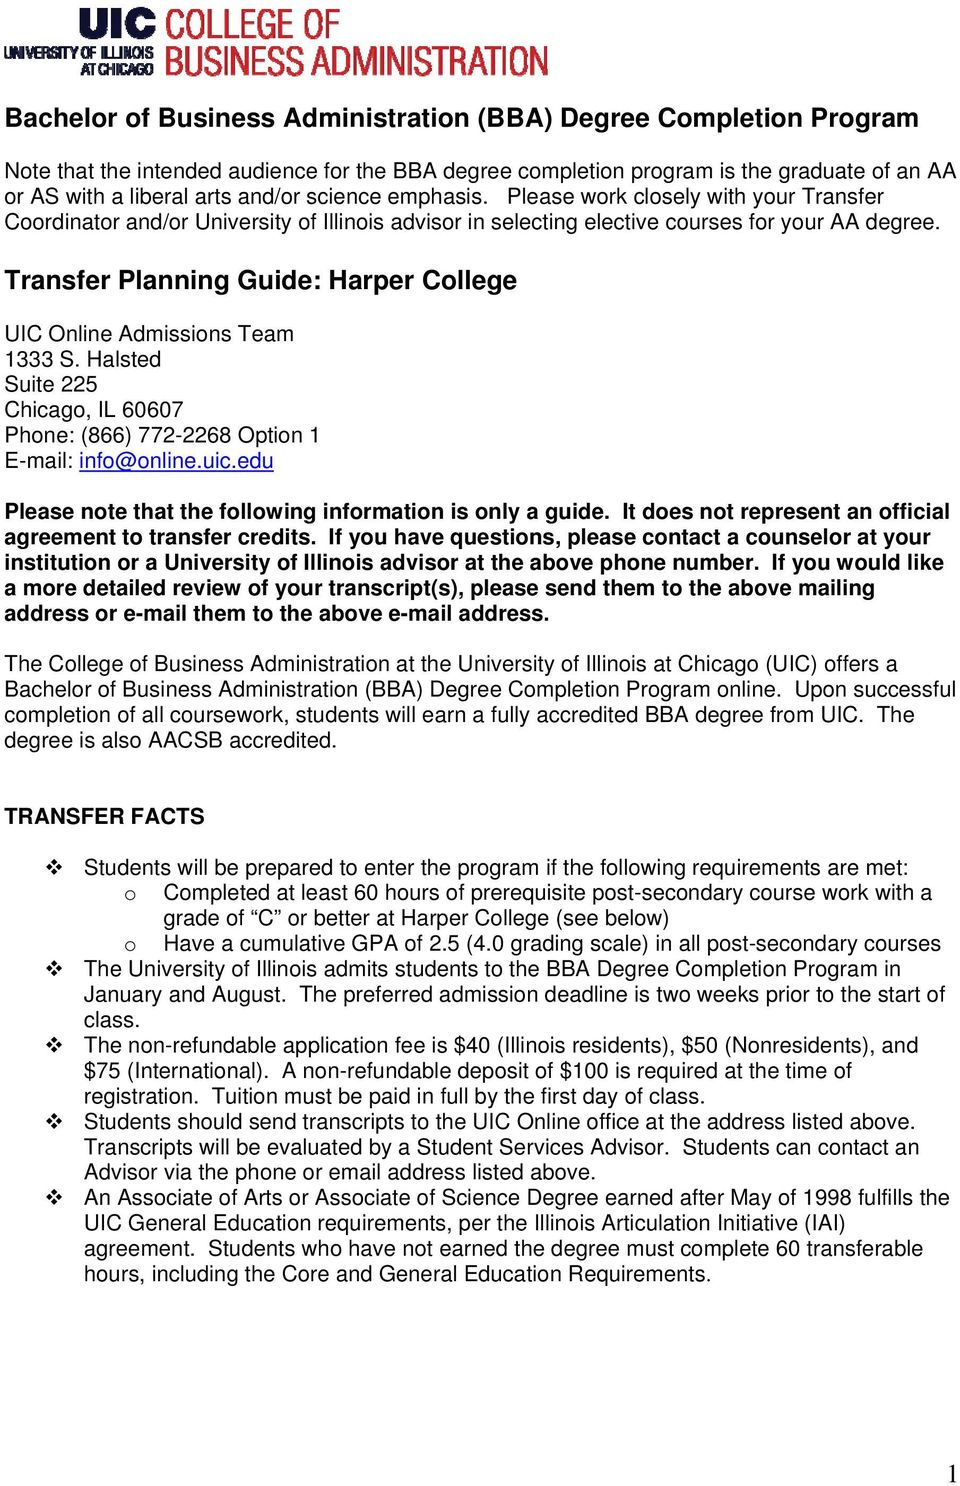 Transfer Planning Guide: Harper College UIC Online Admissions Team 1333 S. Halsted Suite 225 Chicago, IL 60607 Phone: (866) 772-2268 Option 1 E-mail: info@online.uic.